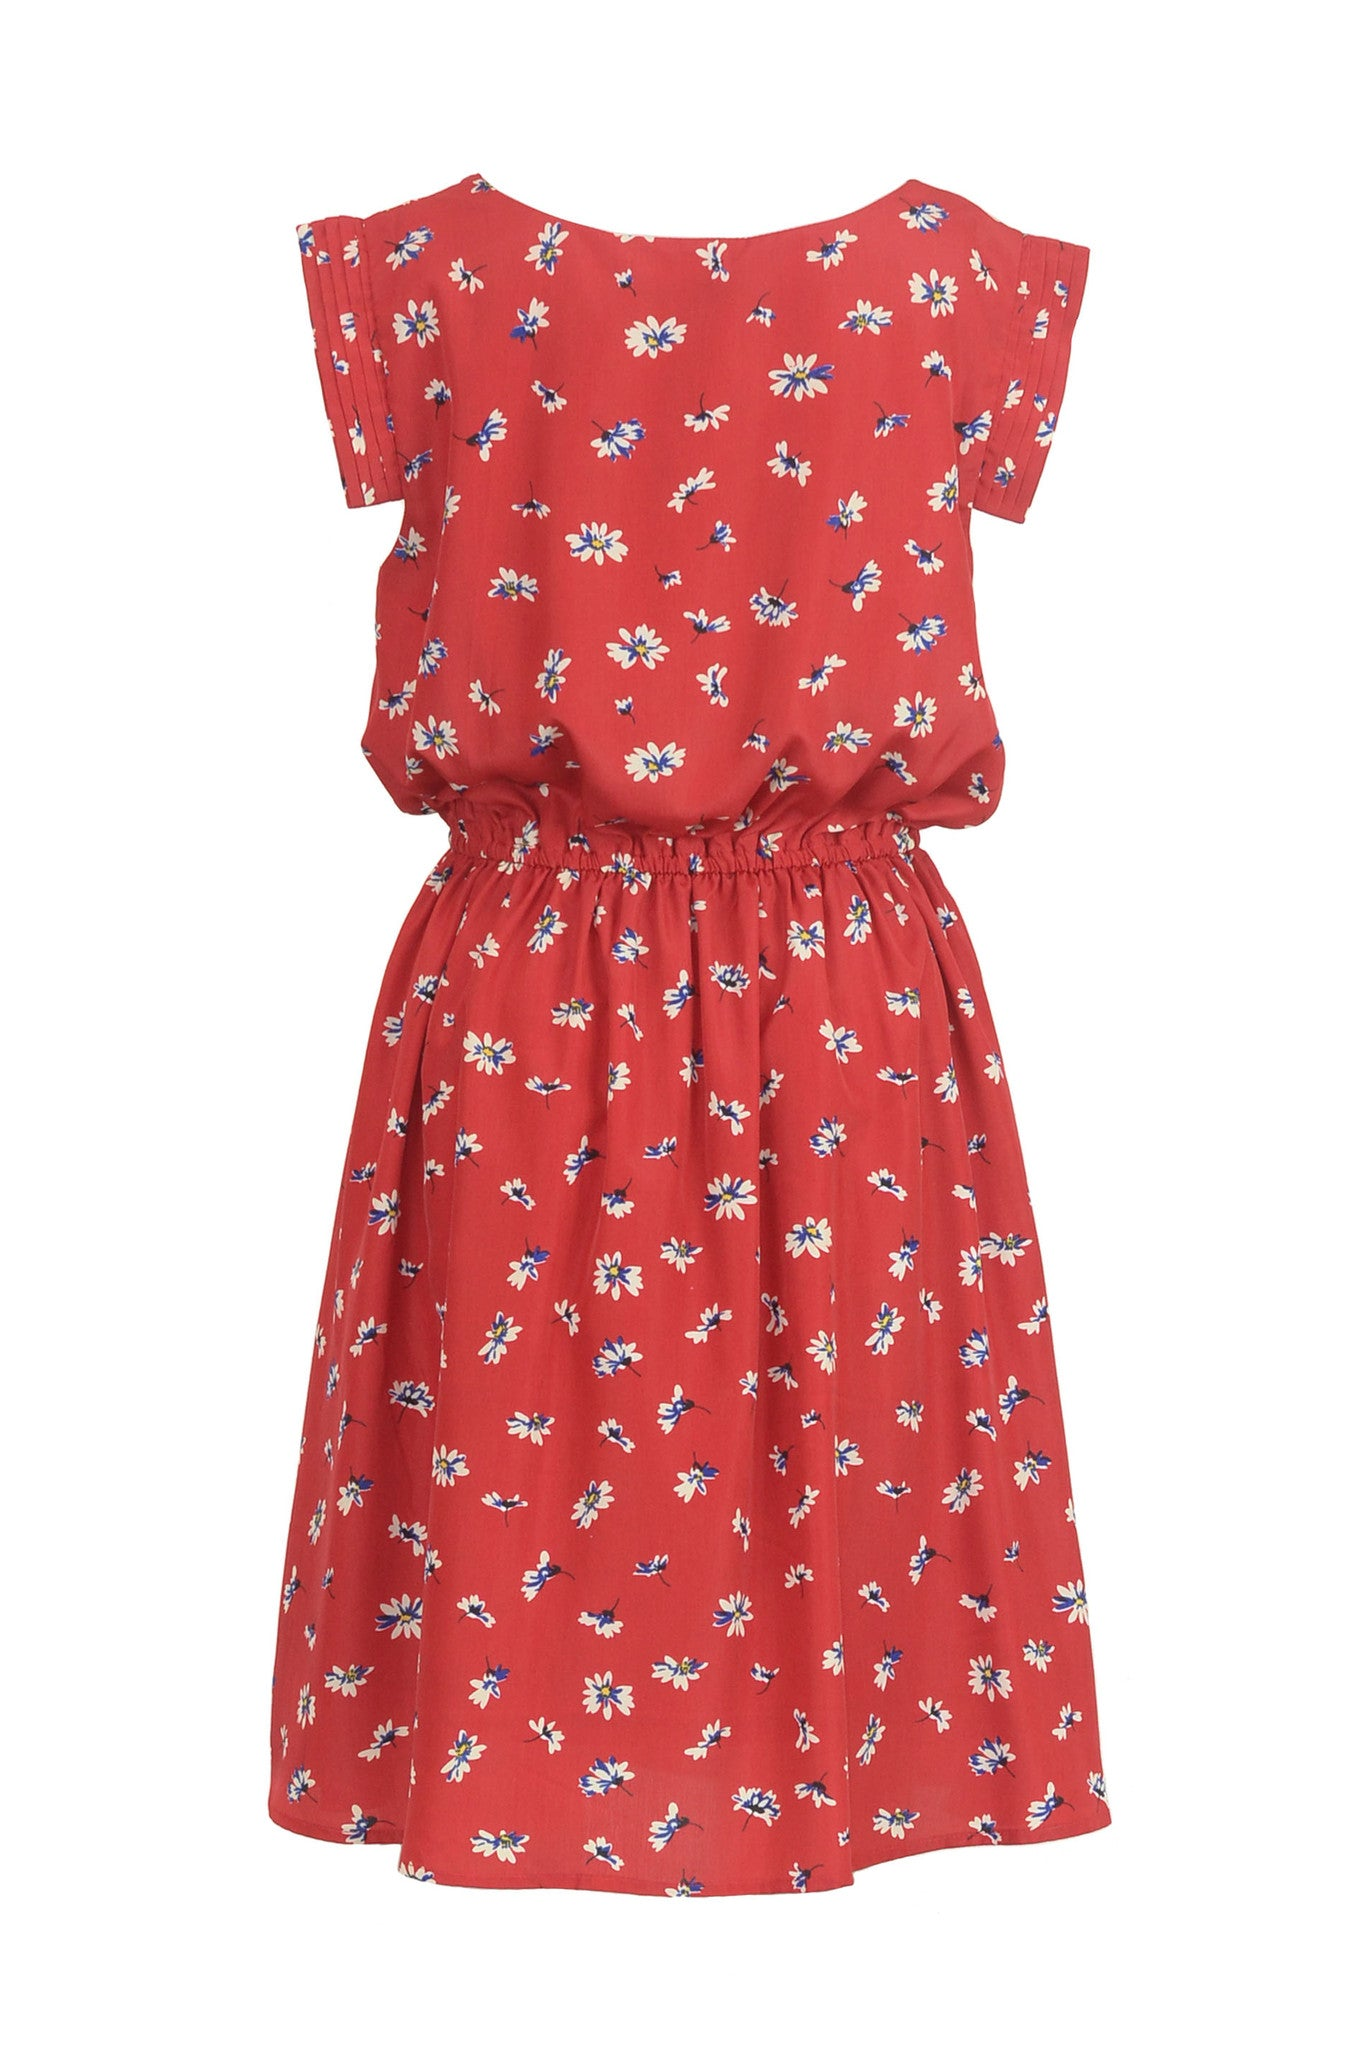 Young Threads red floral dress